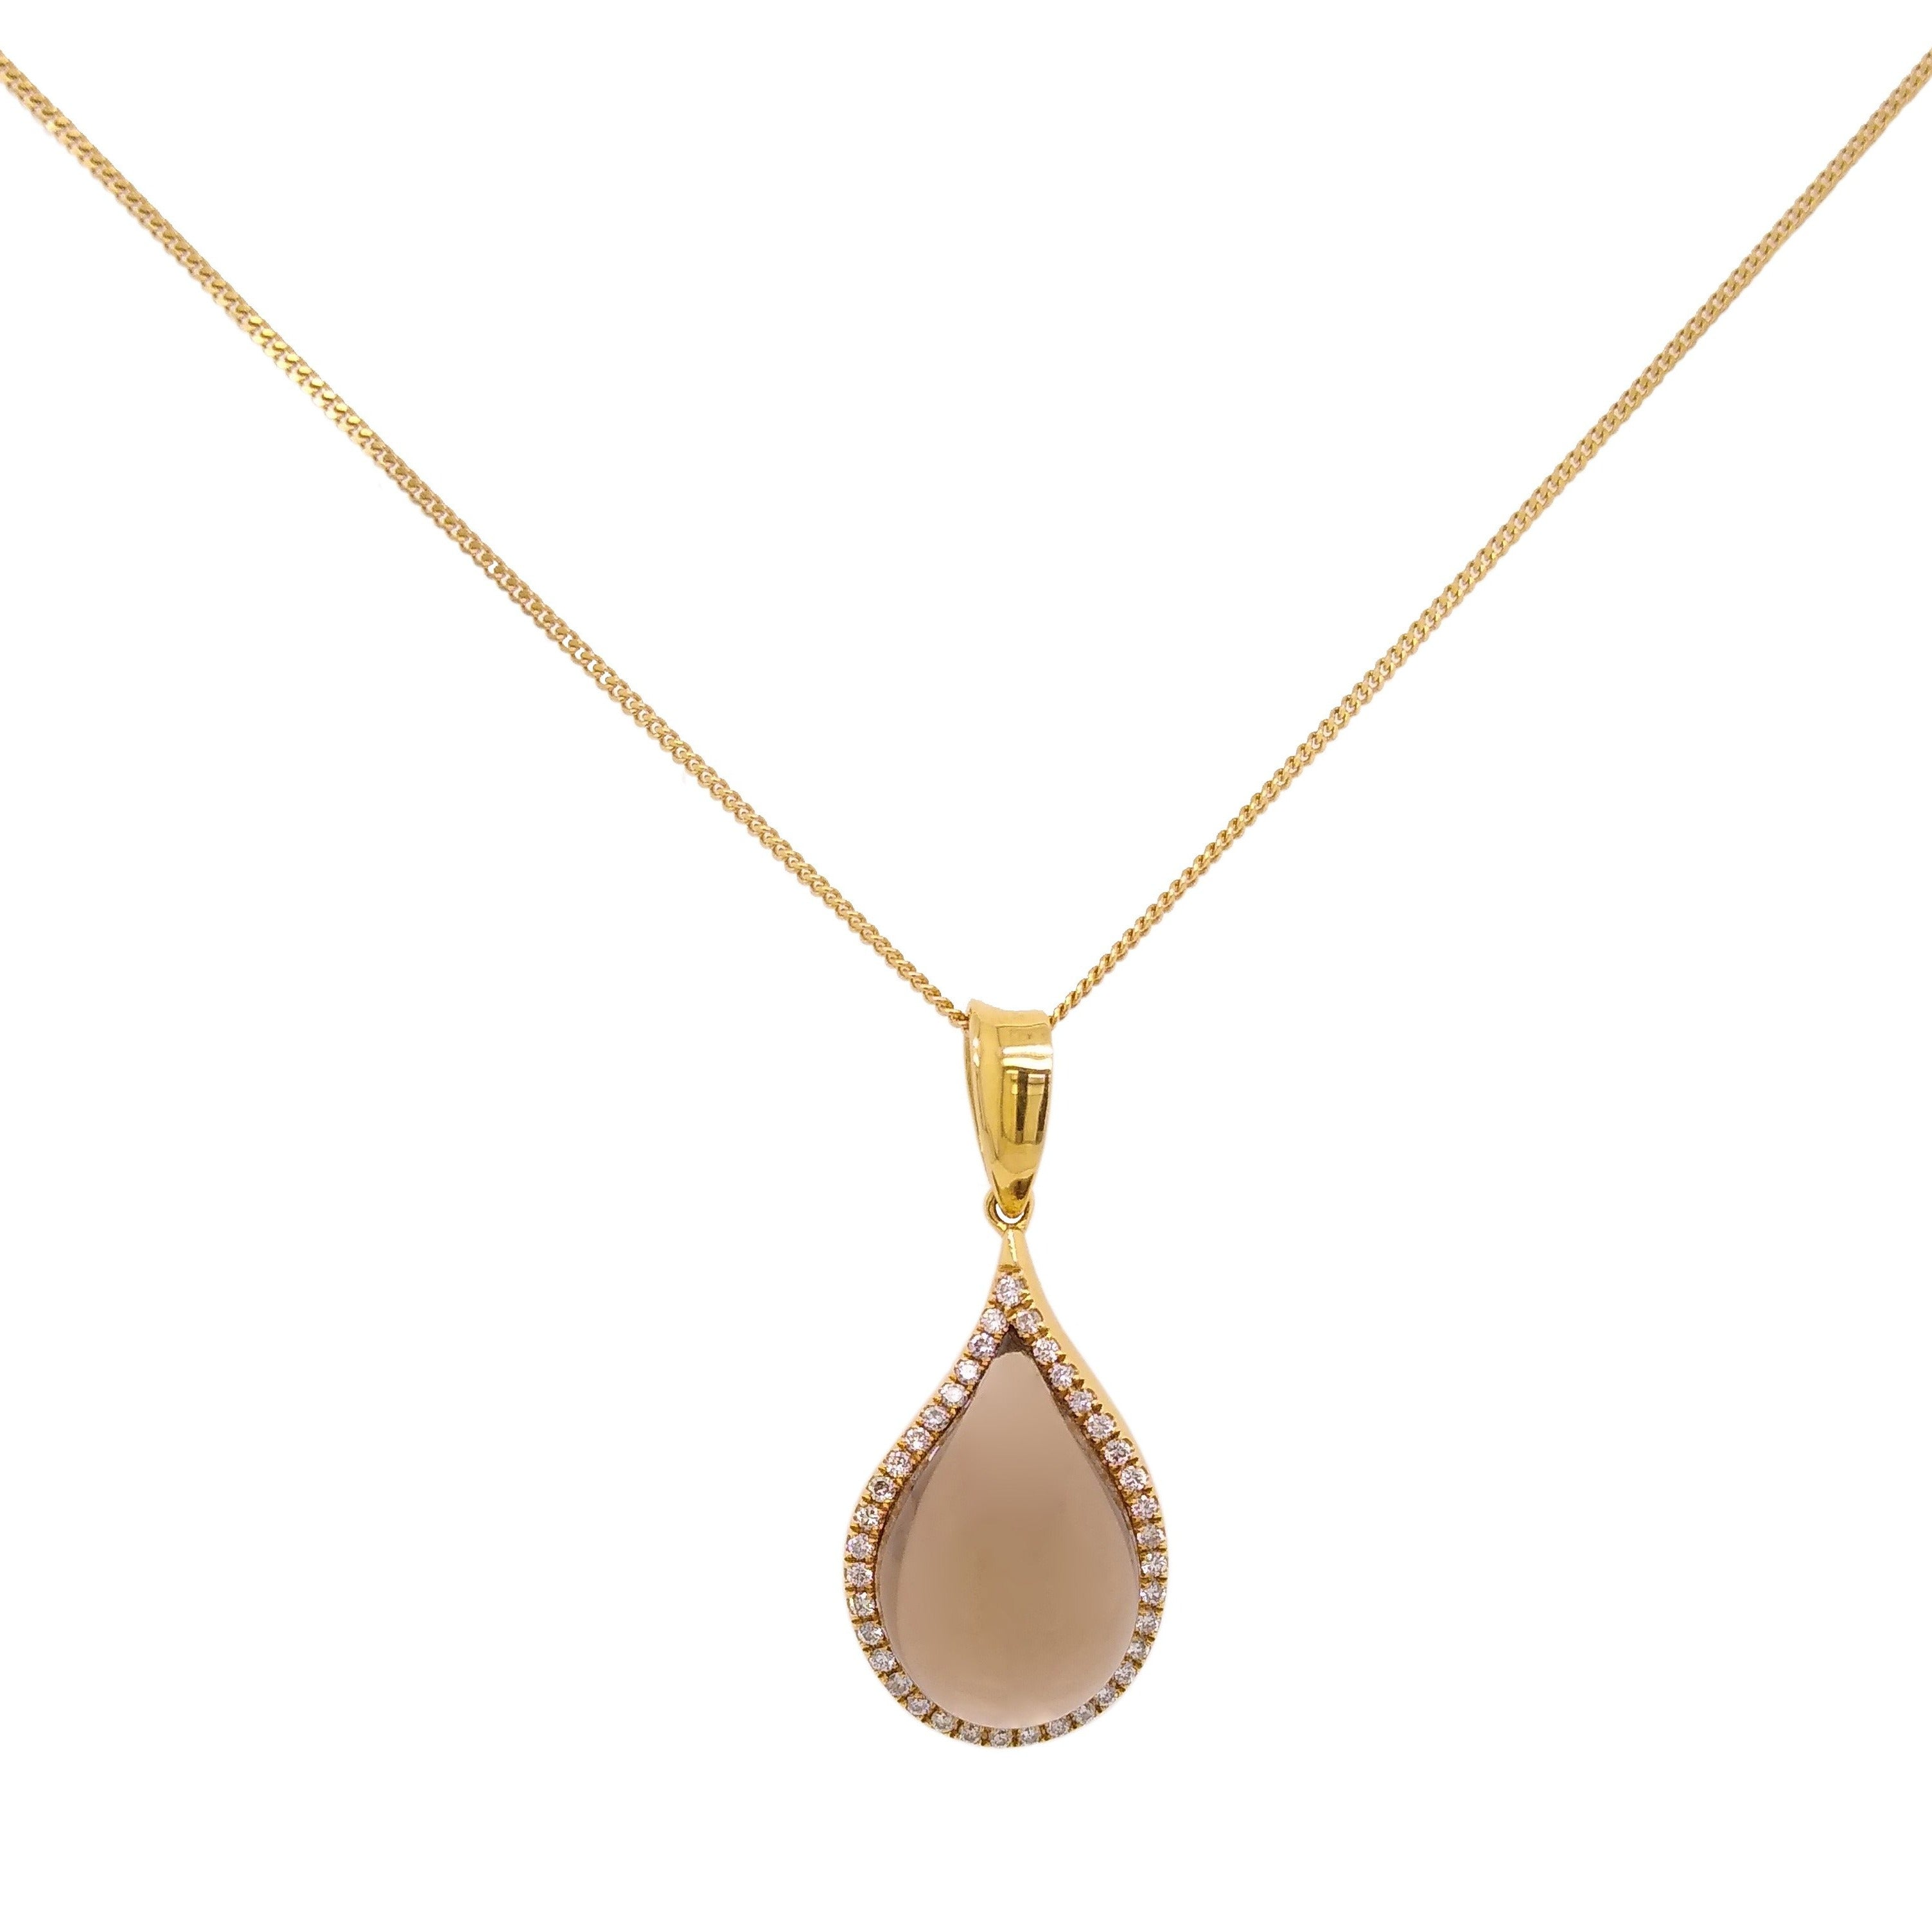 18ct Yellow Gold Smoky Quartz & Diamond Pendant & Chain